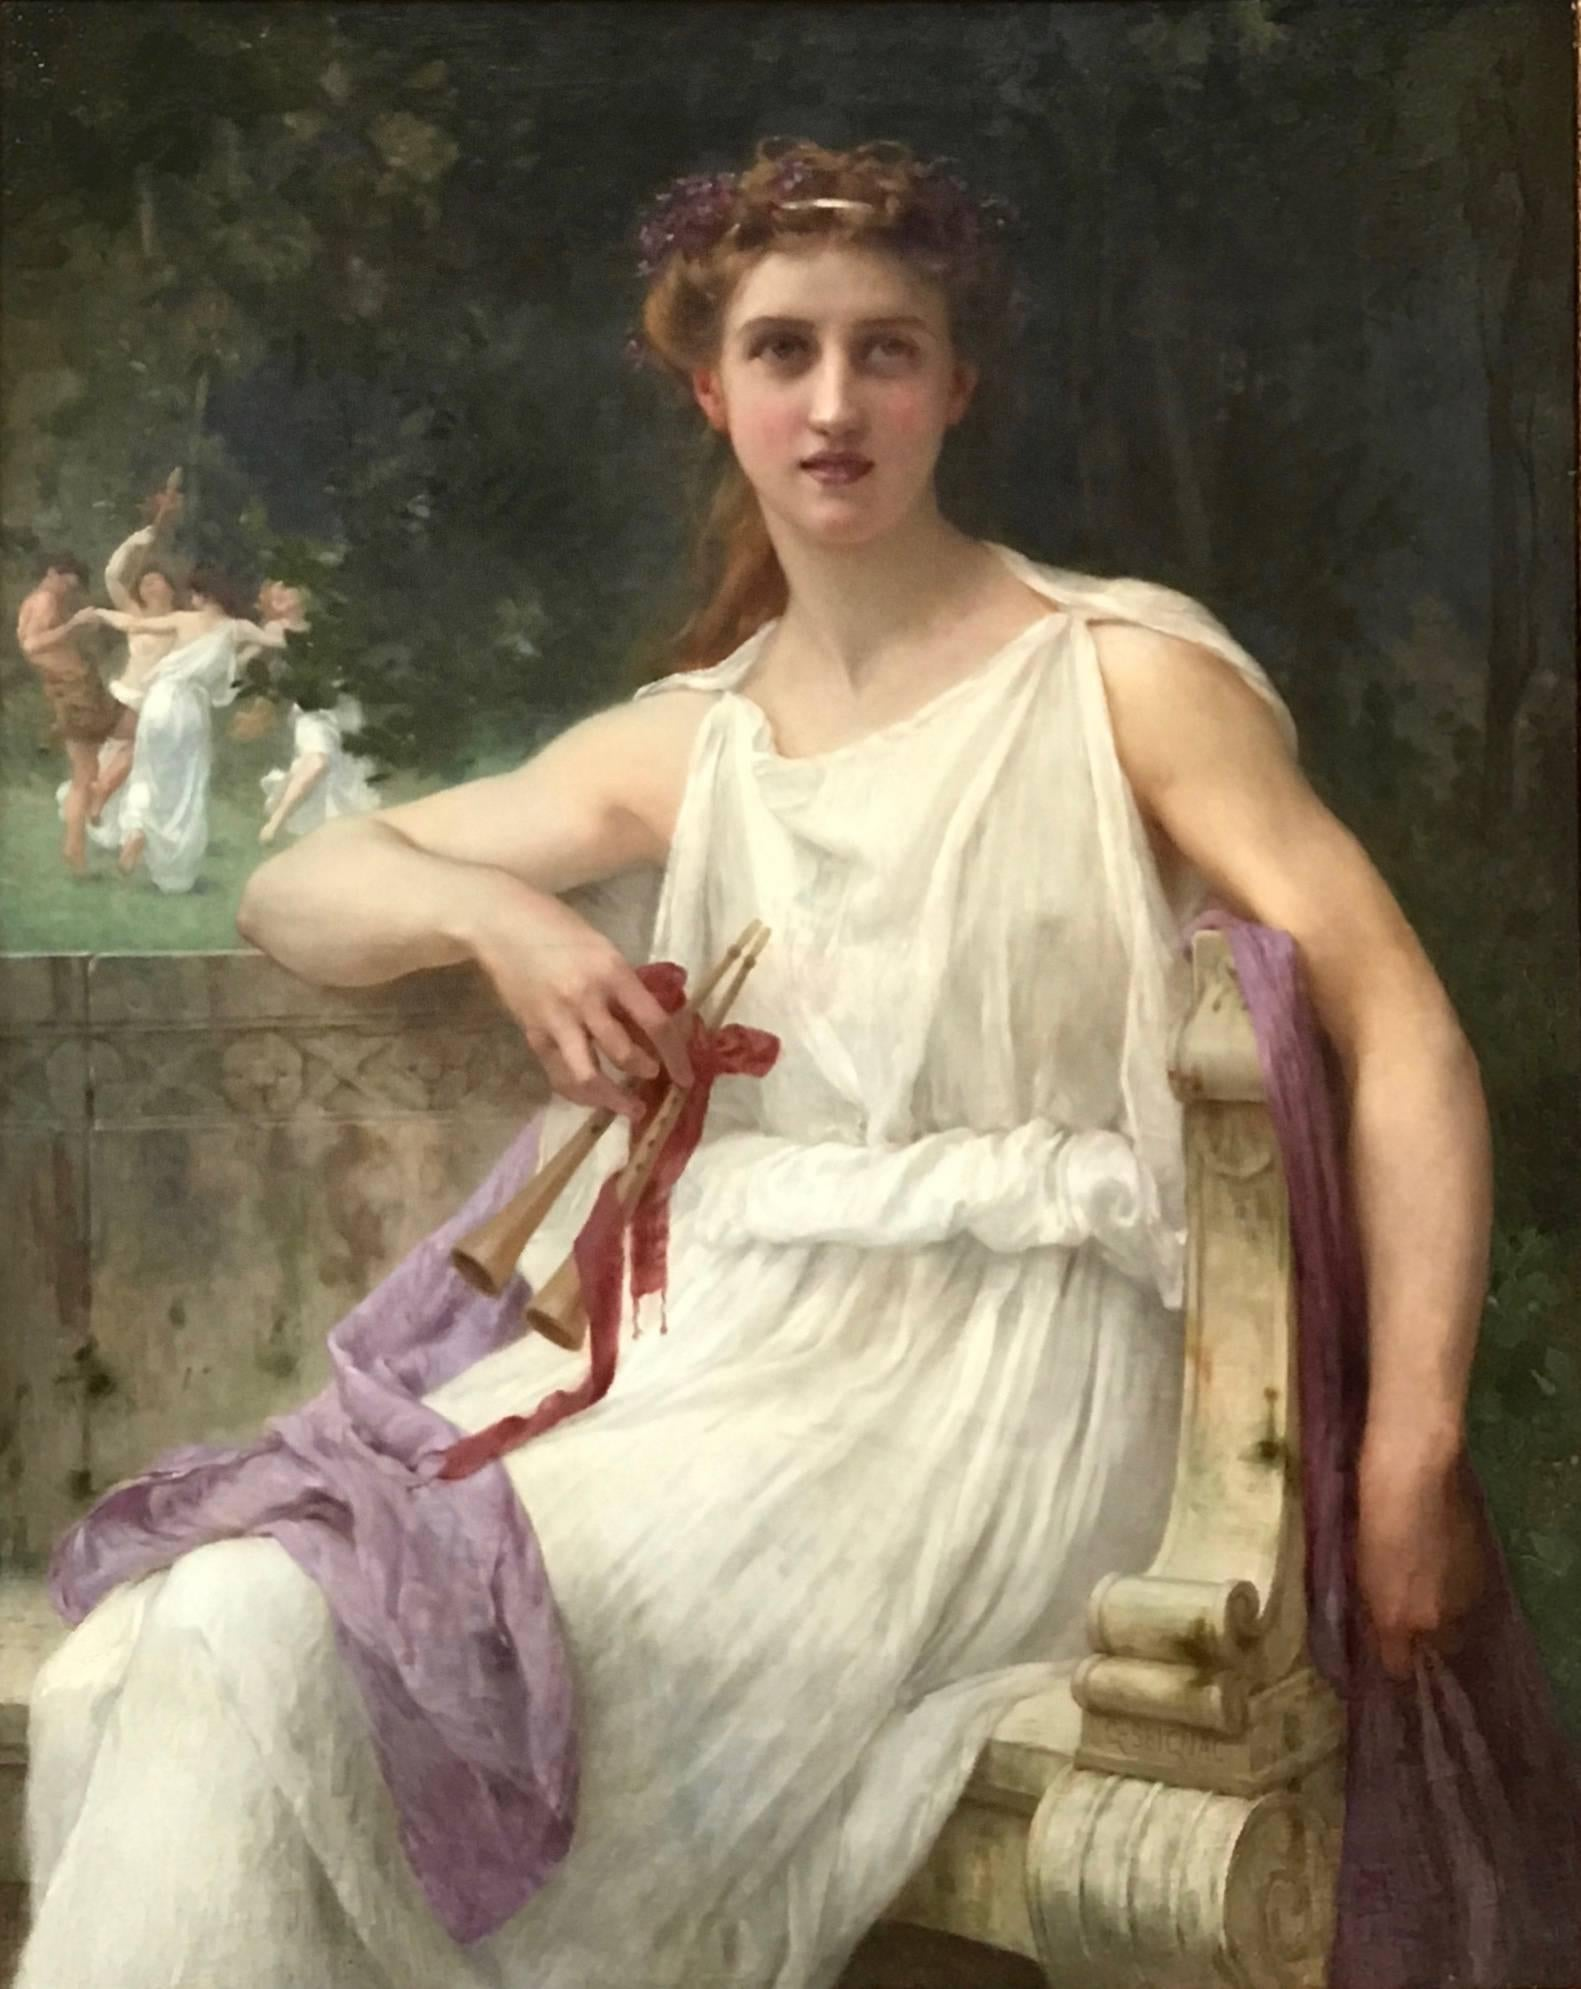 Euterpe (The Muse of Music) - Beautiful Girl with flute in Classical Landscape